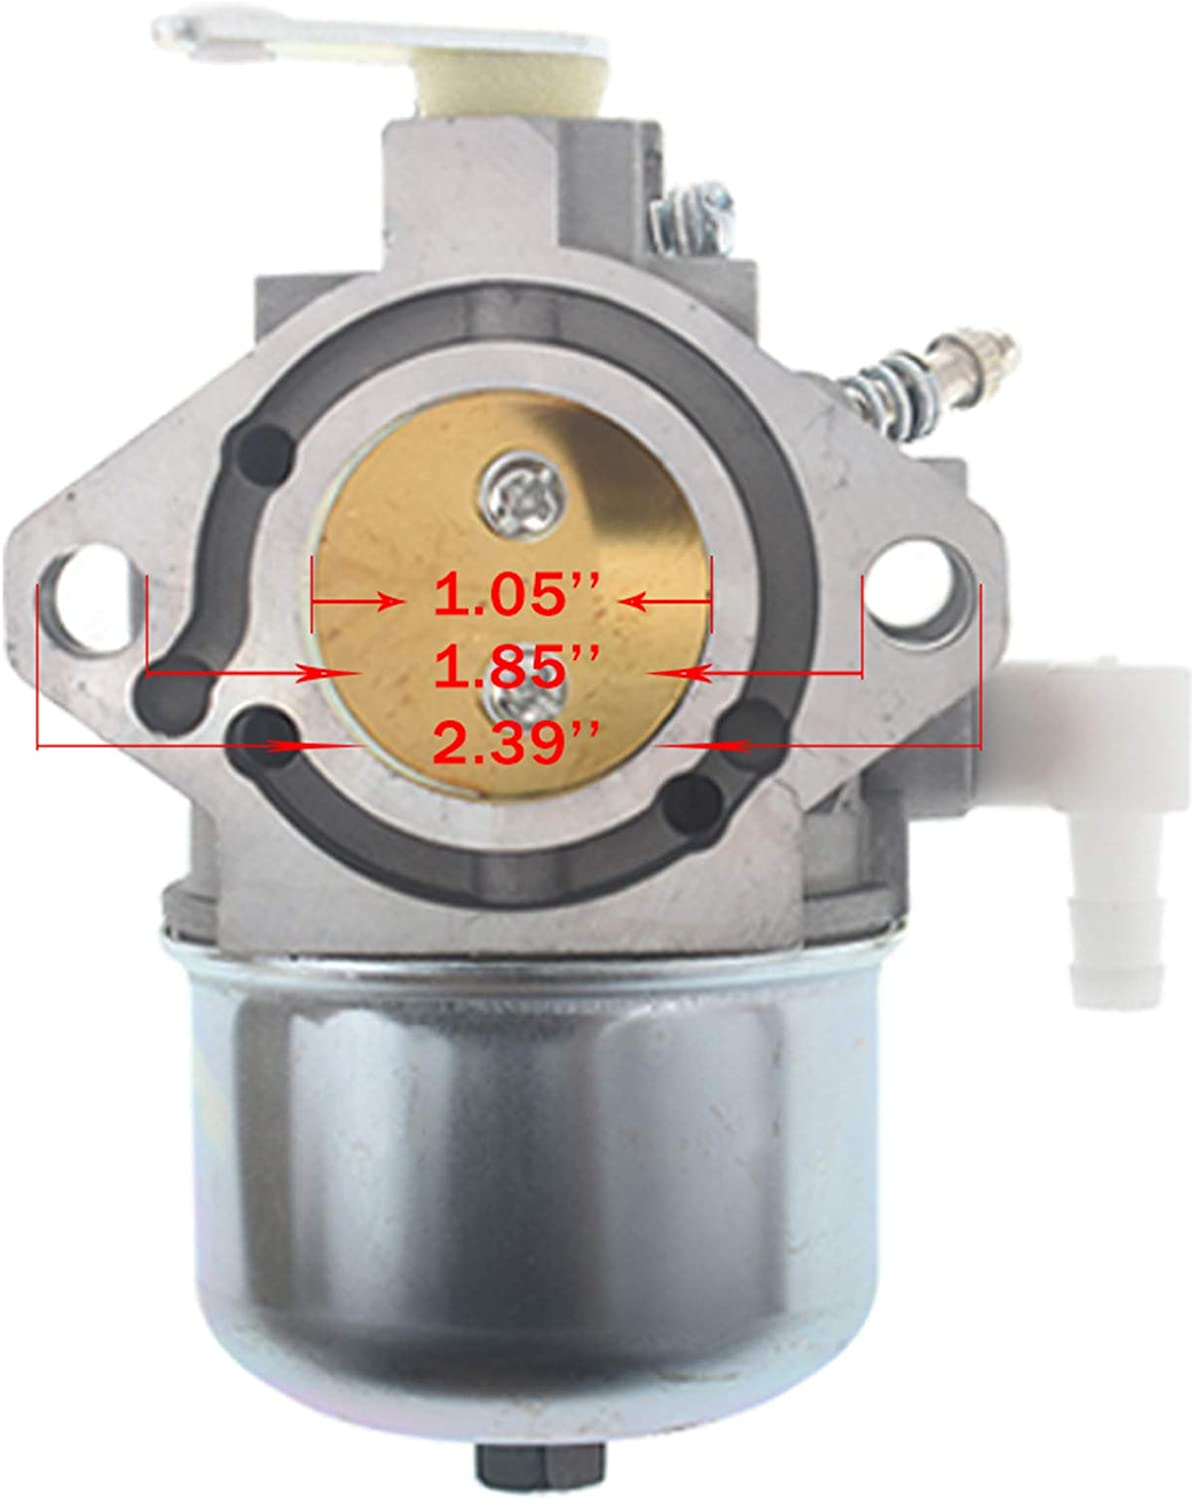 ALL-CARB Carburetor Replacement for Briggs /& Stratton 13HP I//C Gold 28M707 28M706 28R707 Replace 283702 283707 284702 284707 284777 286702